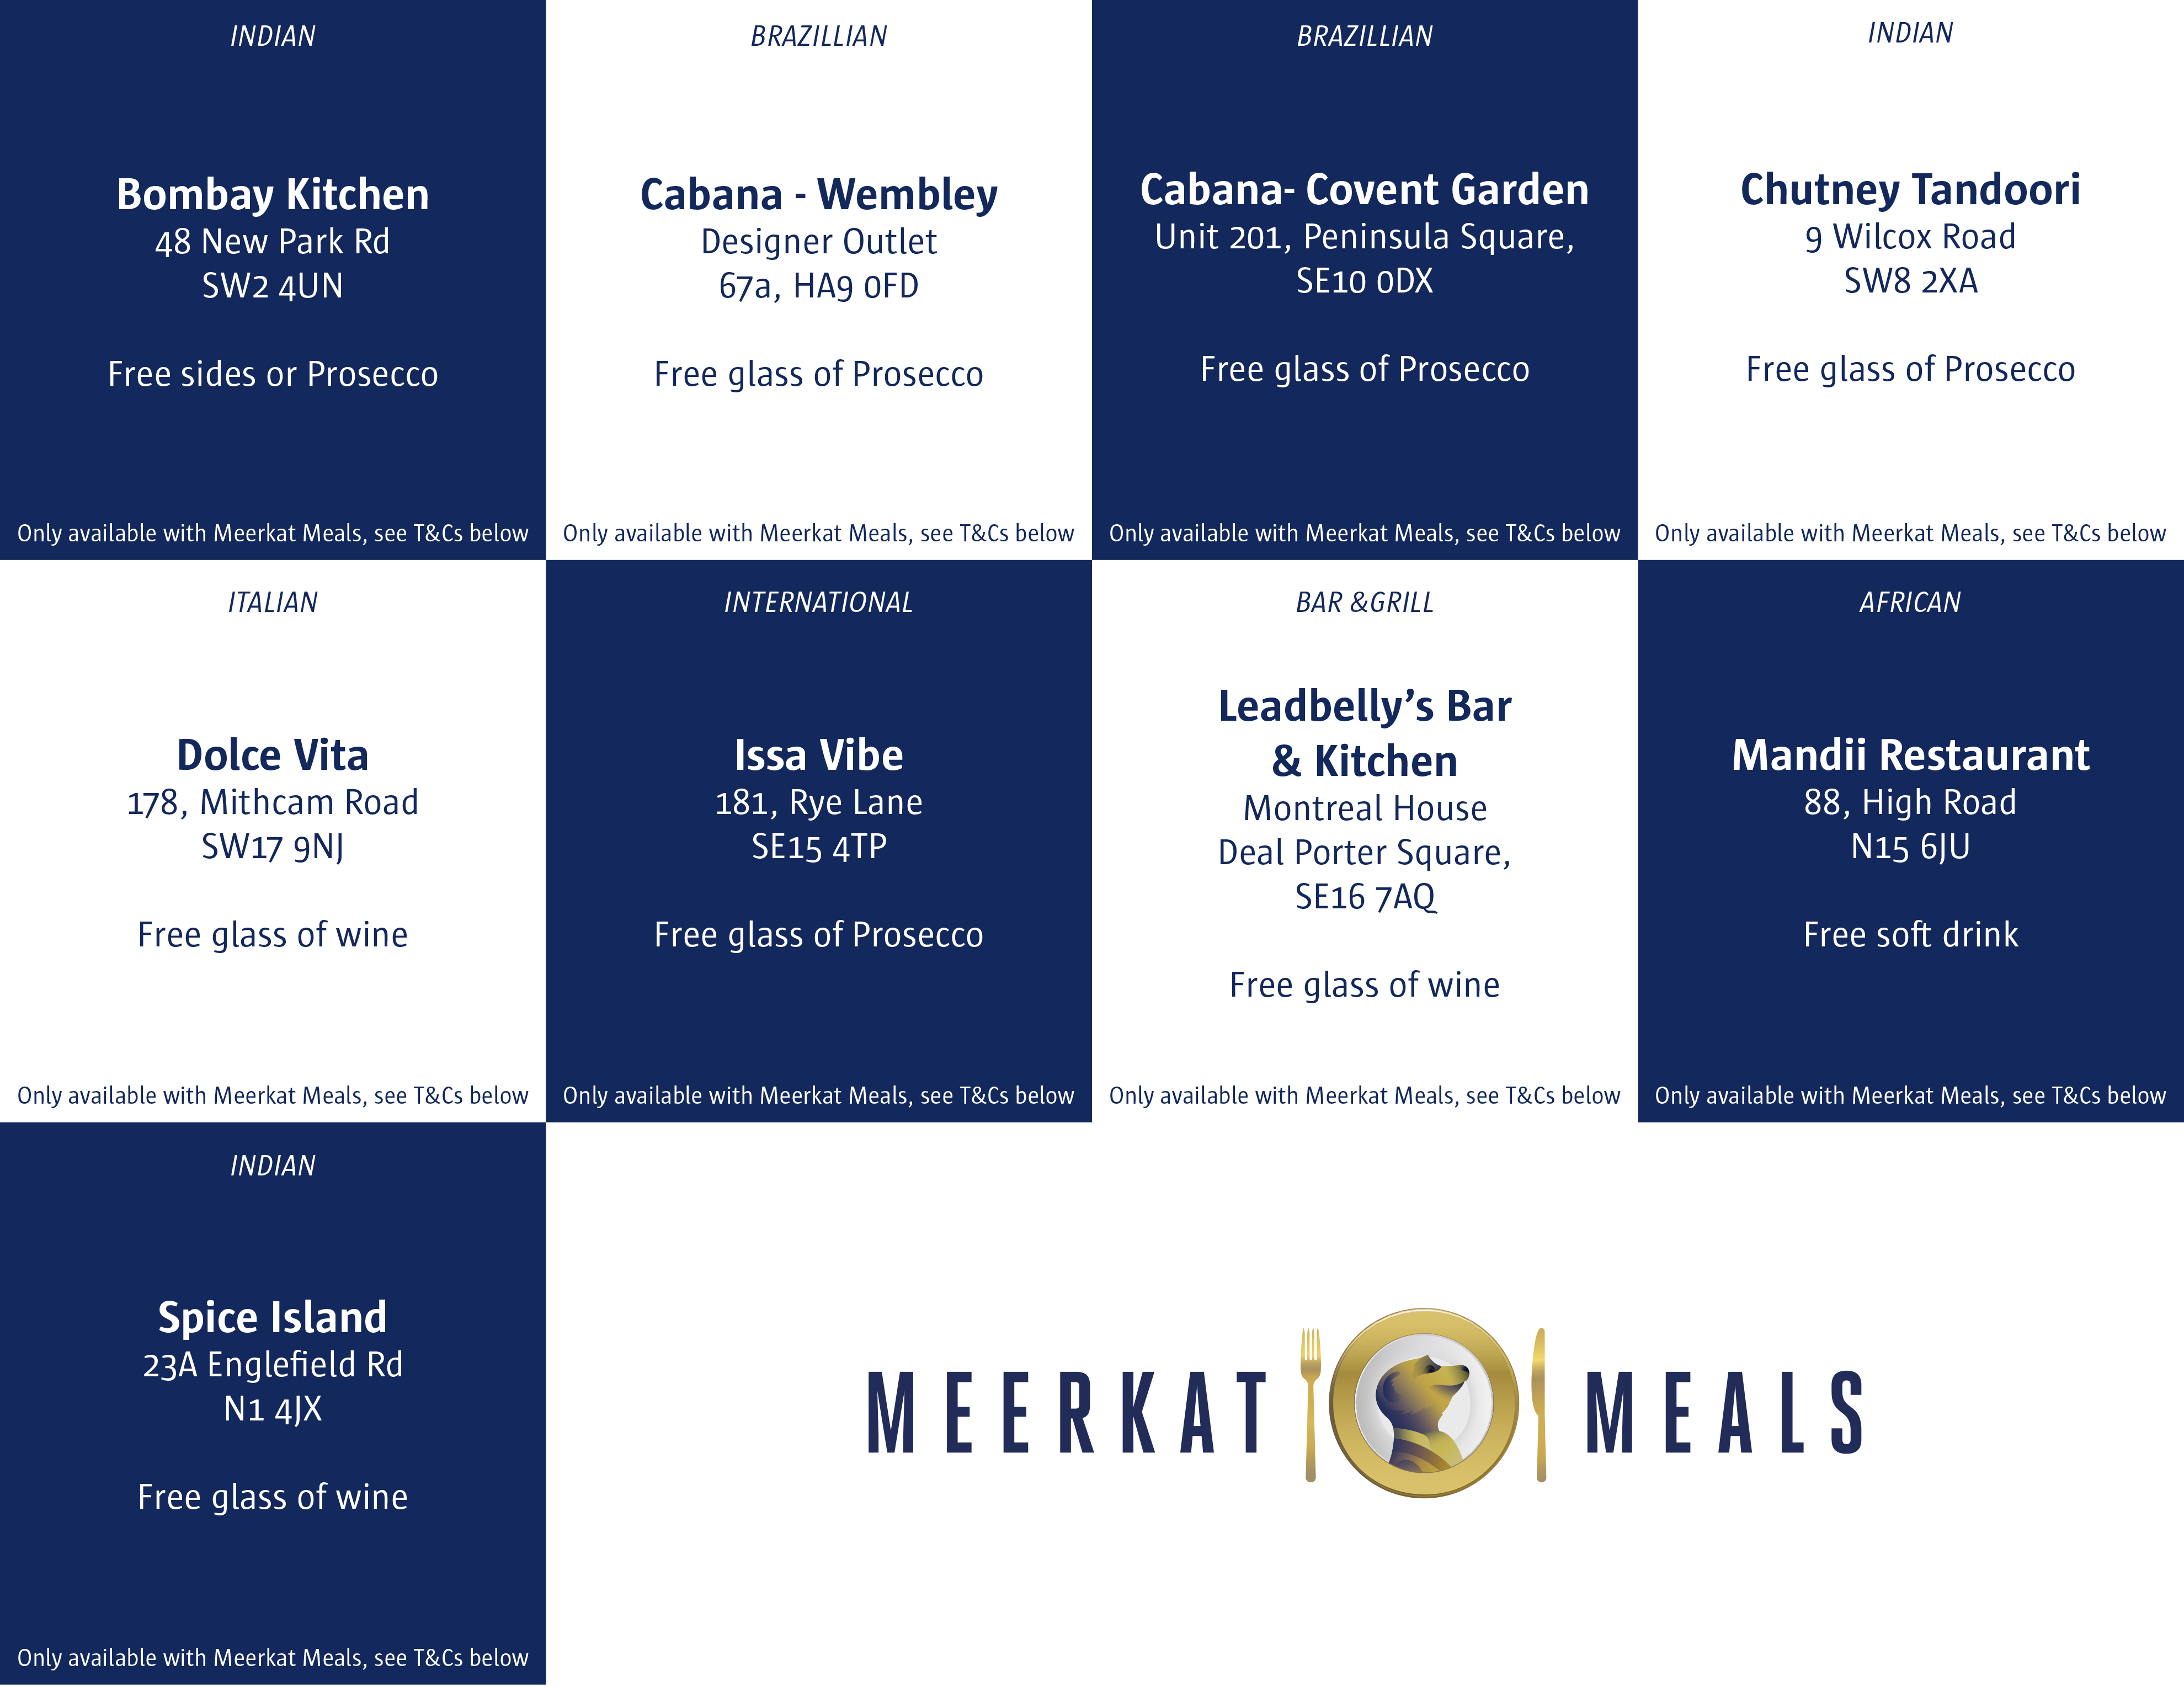 London meal offers for Independents Day.